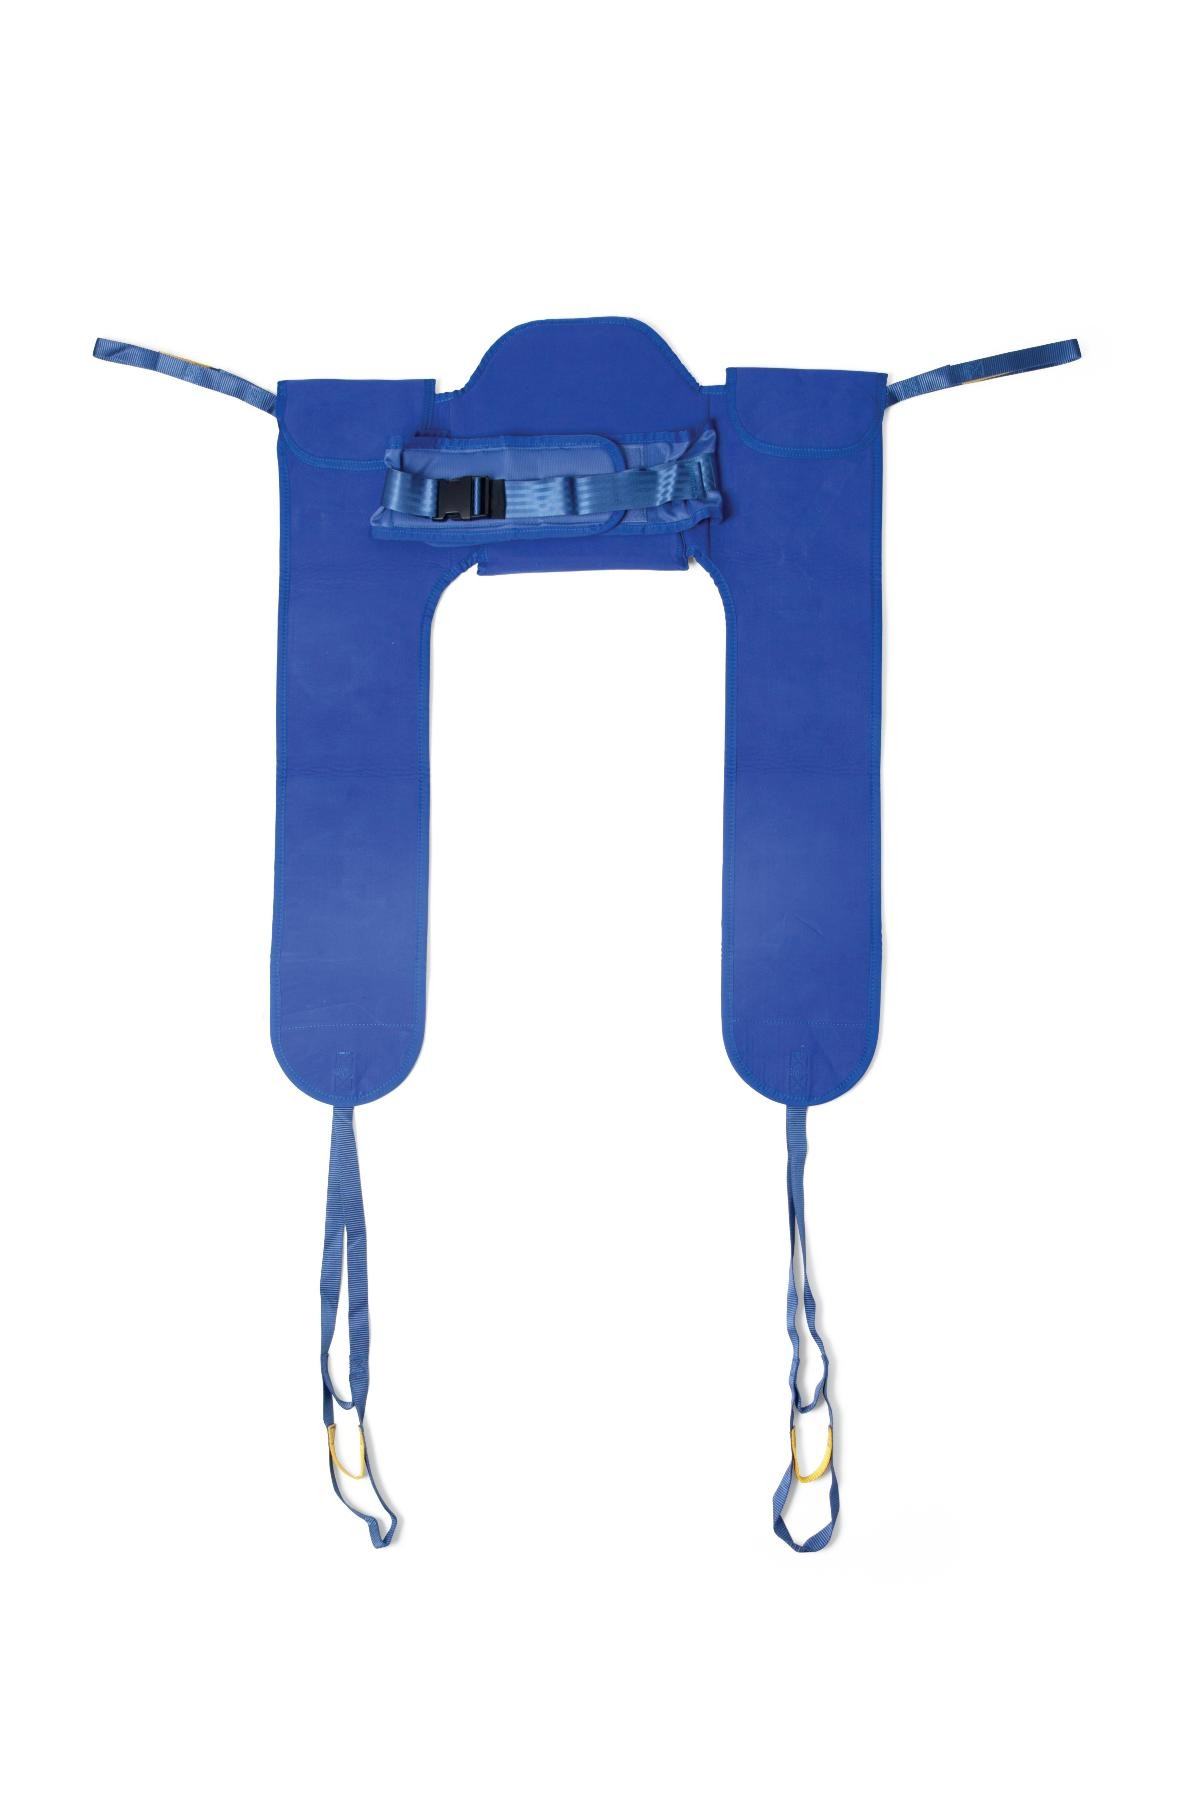 Medline Padded Toileting Sling - Small